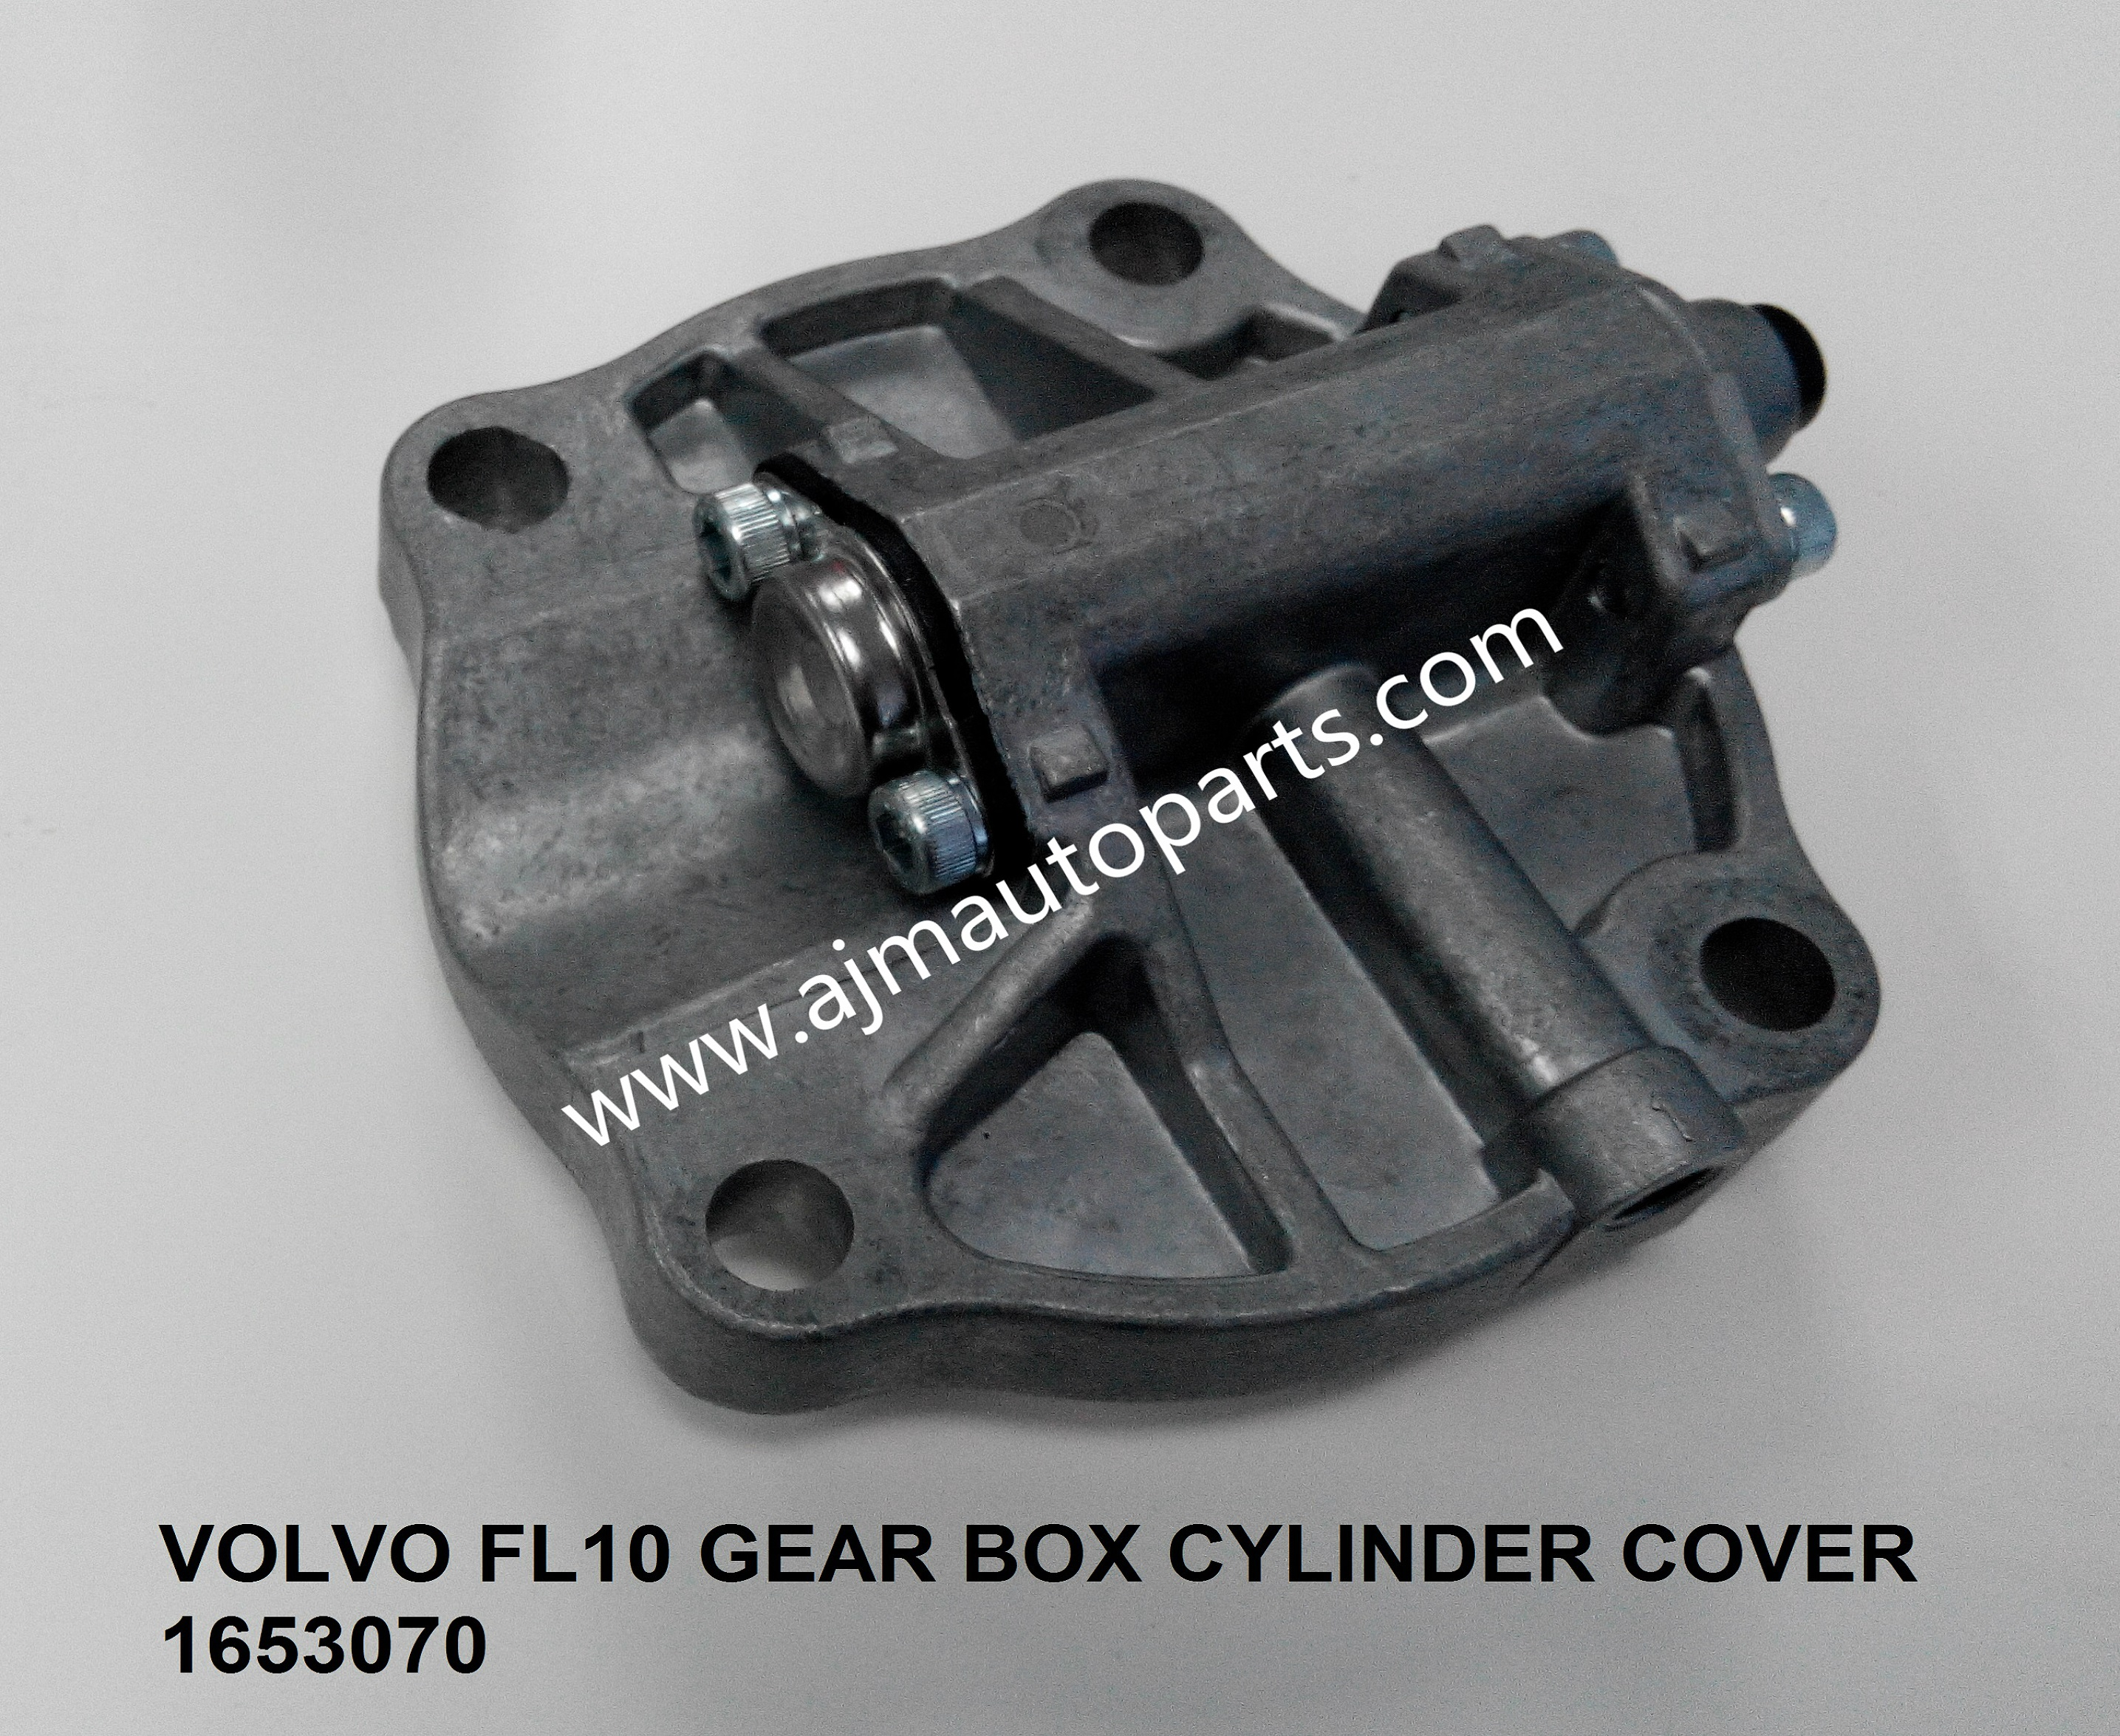 VOLVO_FL10_GEAR_BOX_CYLINDER_COVER-1653070